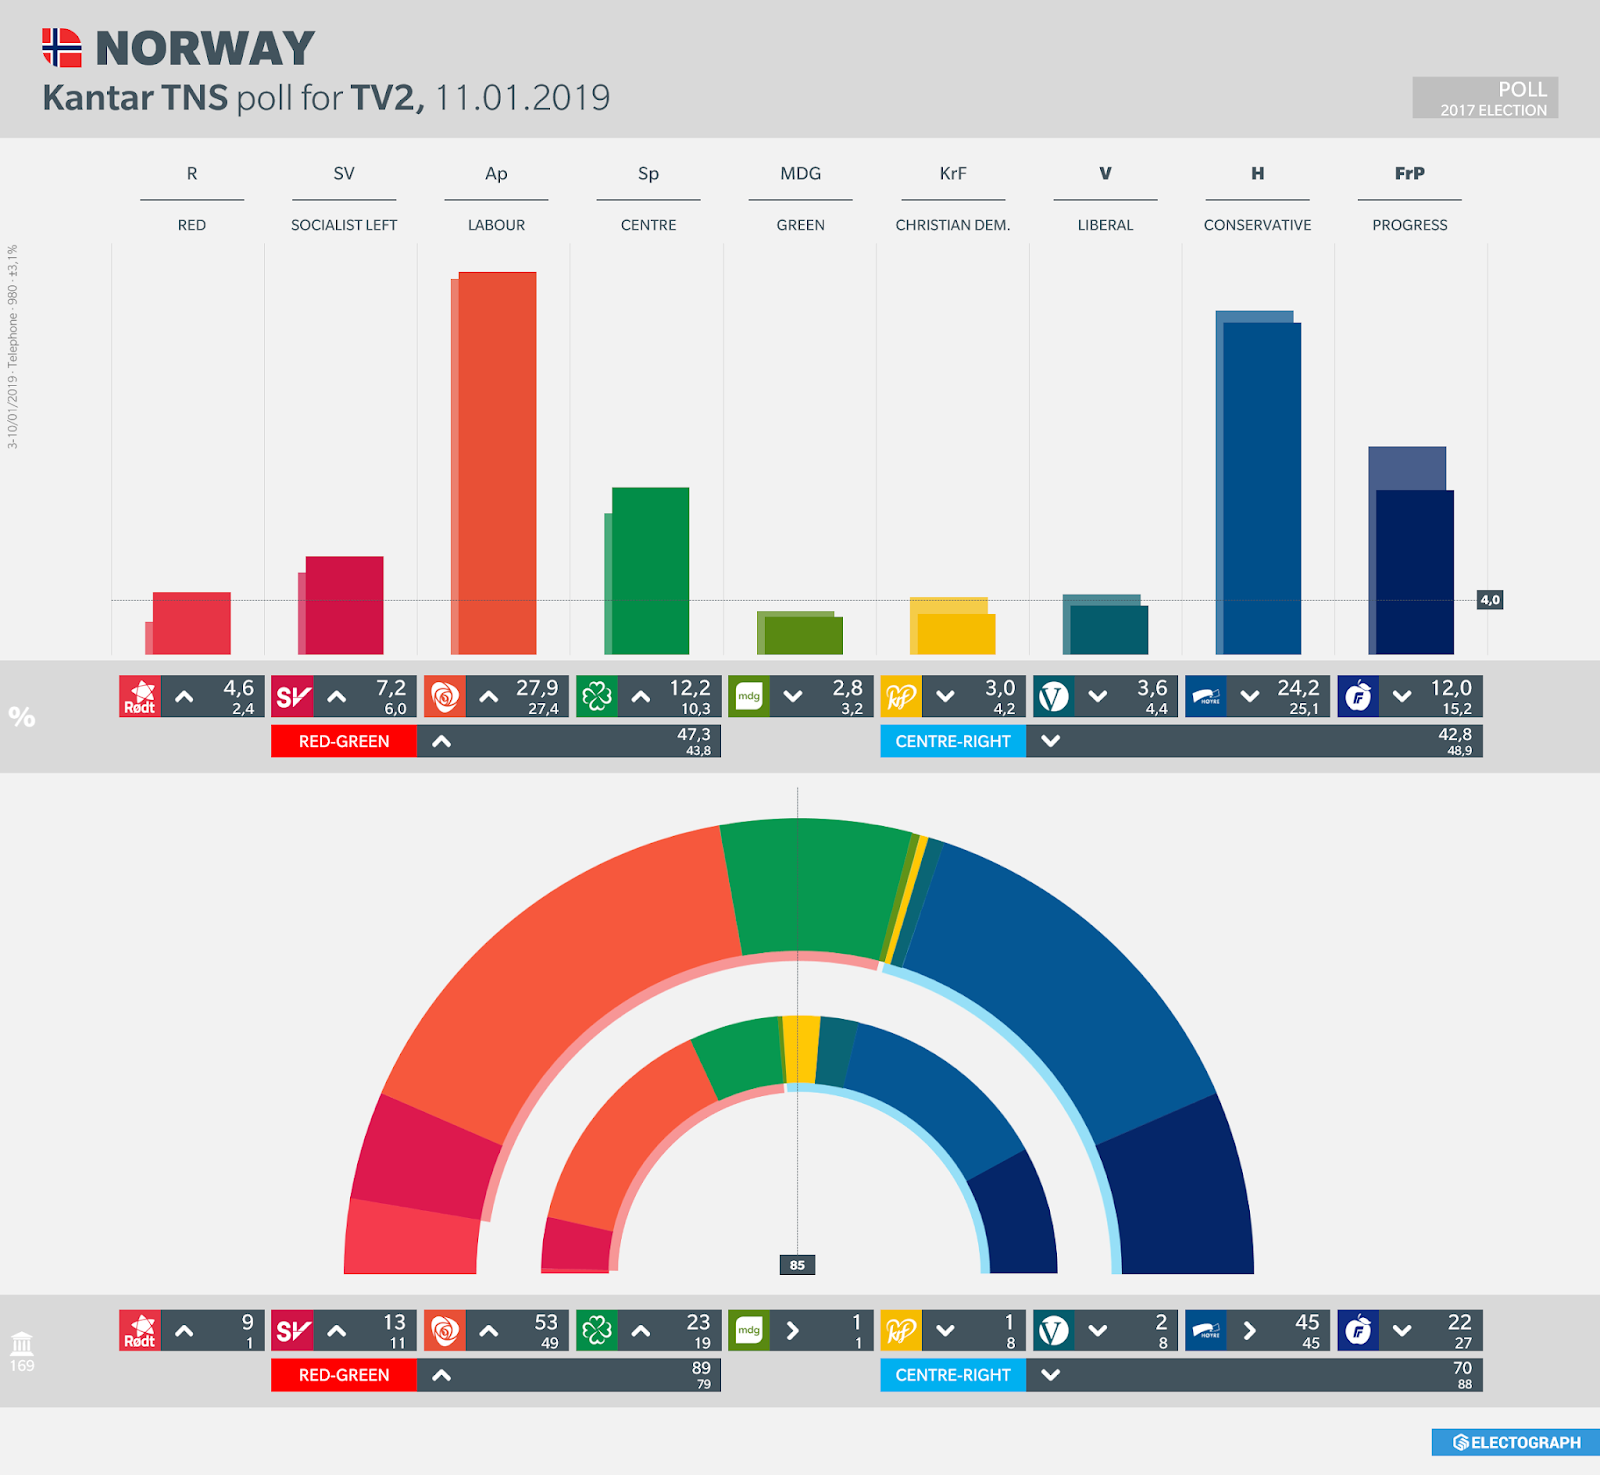 NORWAY: Kantar TNS poll chart for TV2, 11 January 2019